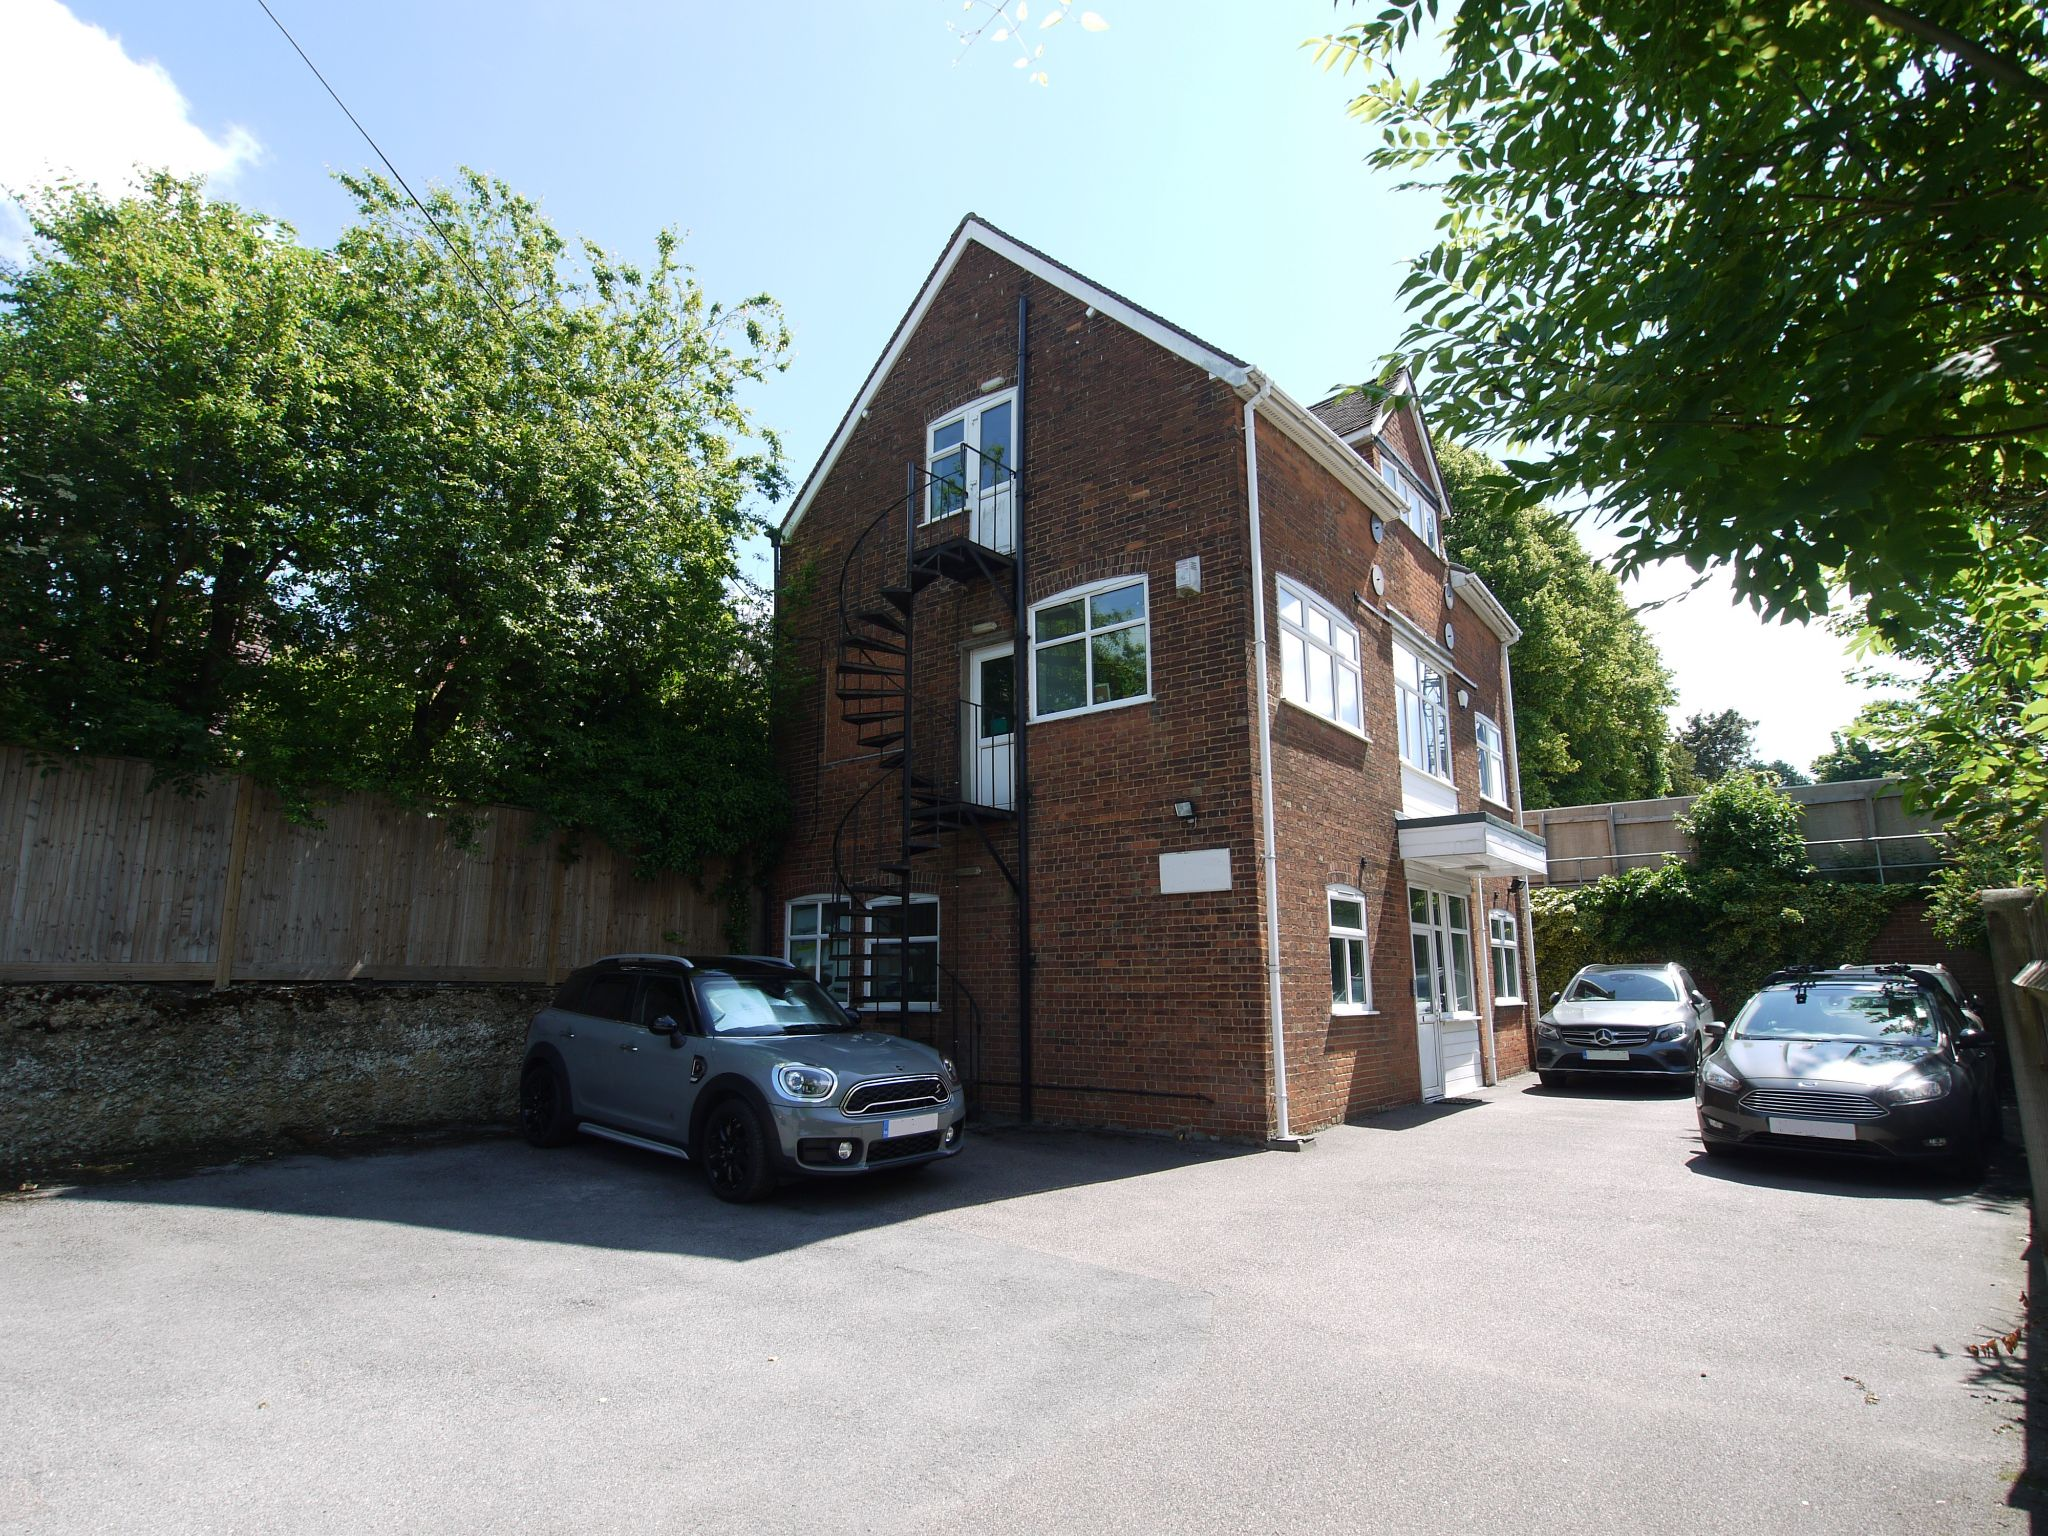 0 bedroom plot land Sale Agreed in Sevenoaks - Photograph 1